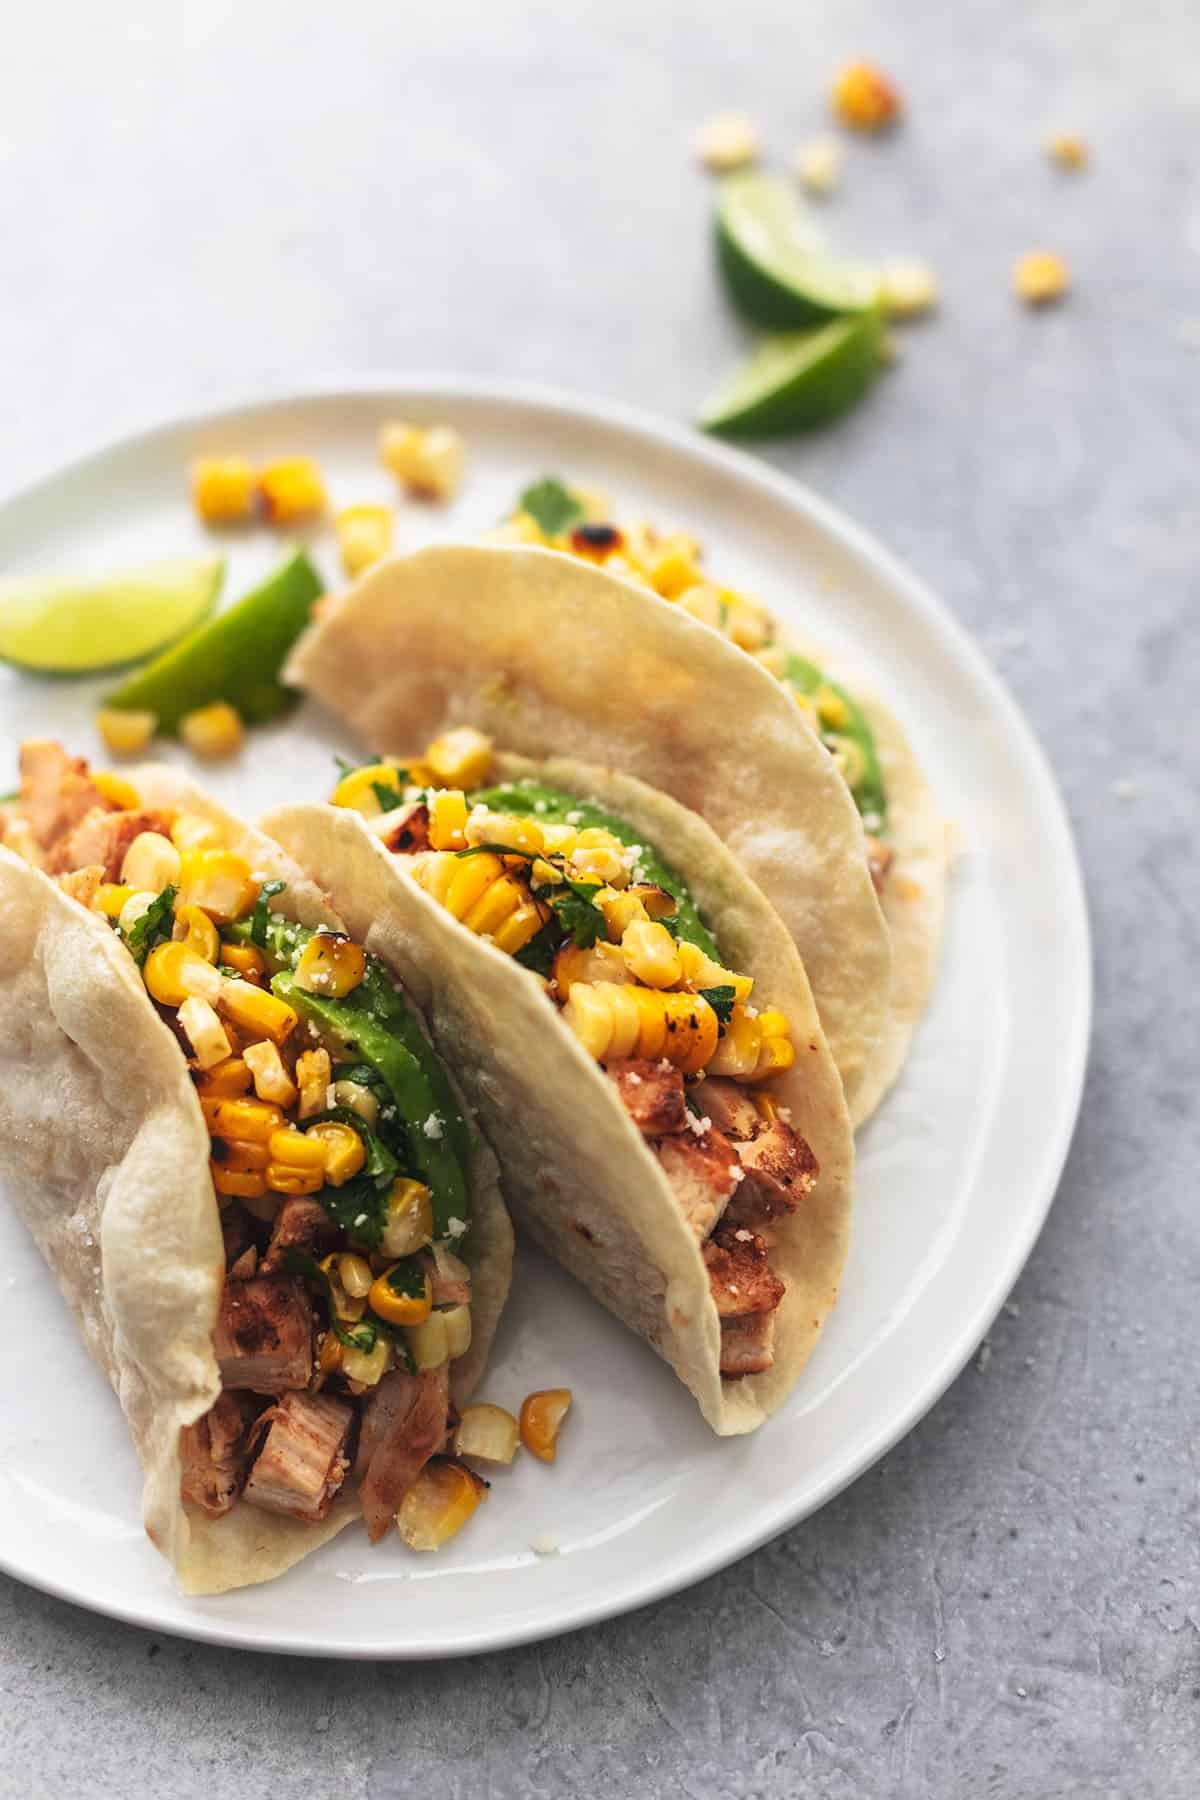 three tortillas on a plate with avocado and corn salsa